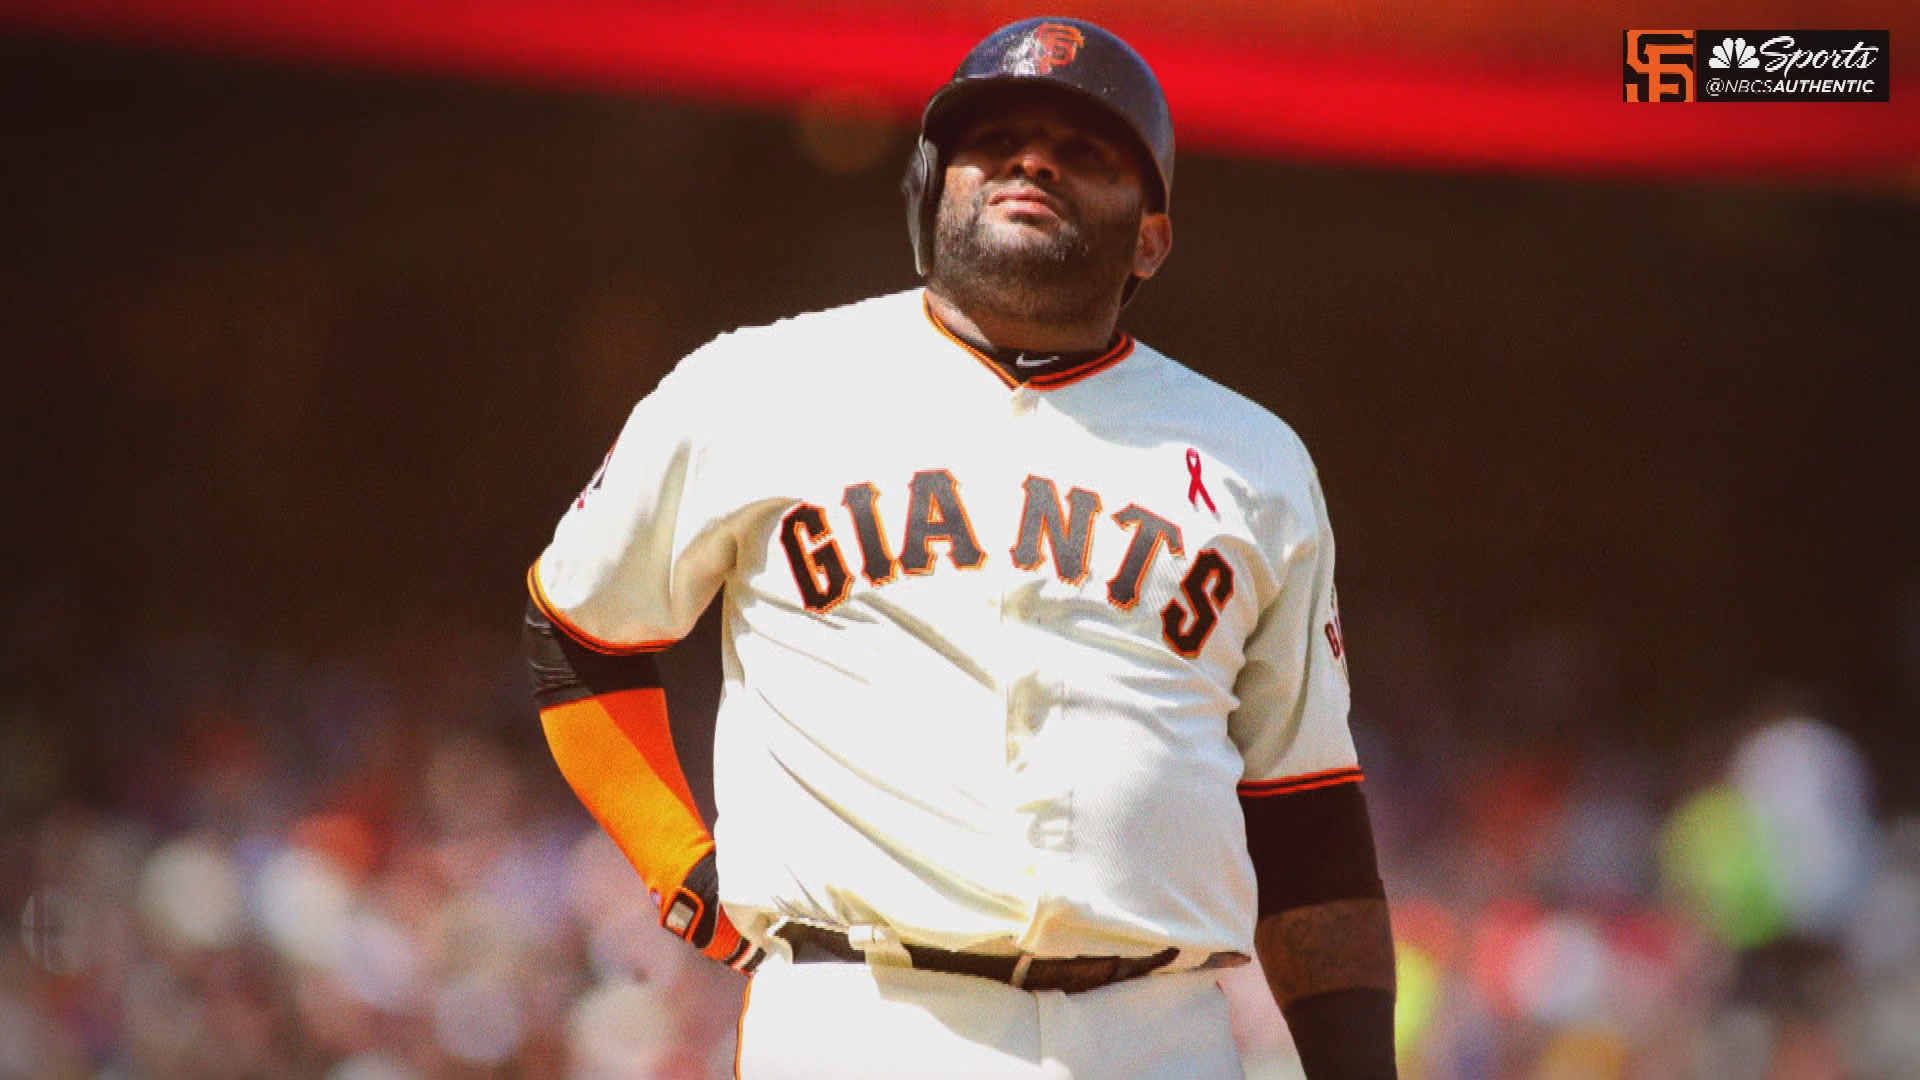 Pablo Sandoval the latest Giant to lose season to injury